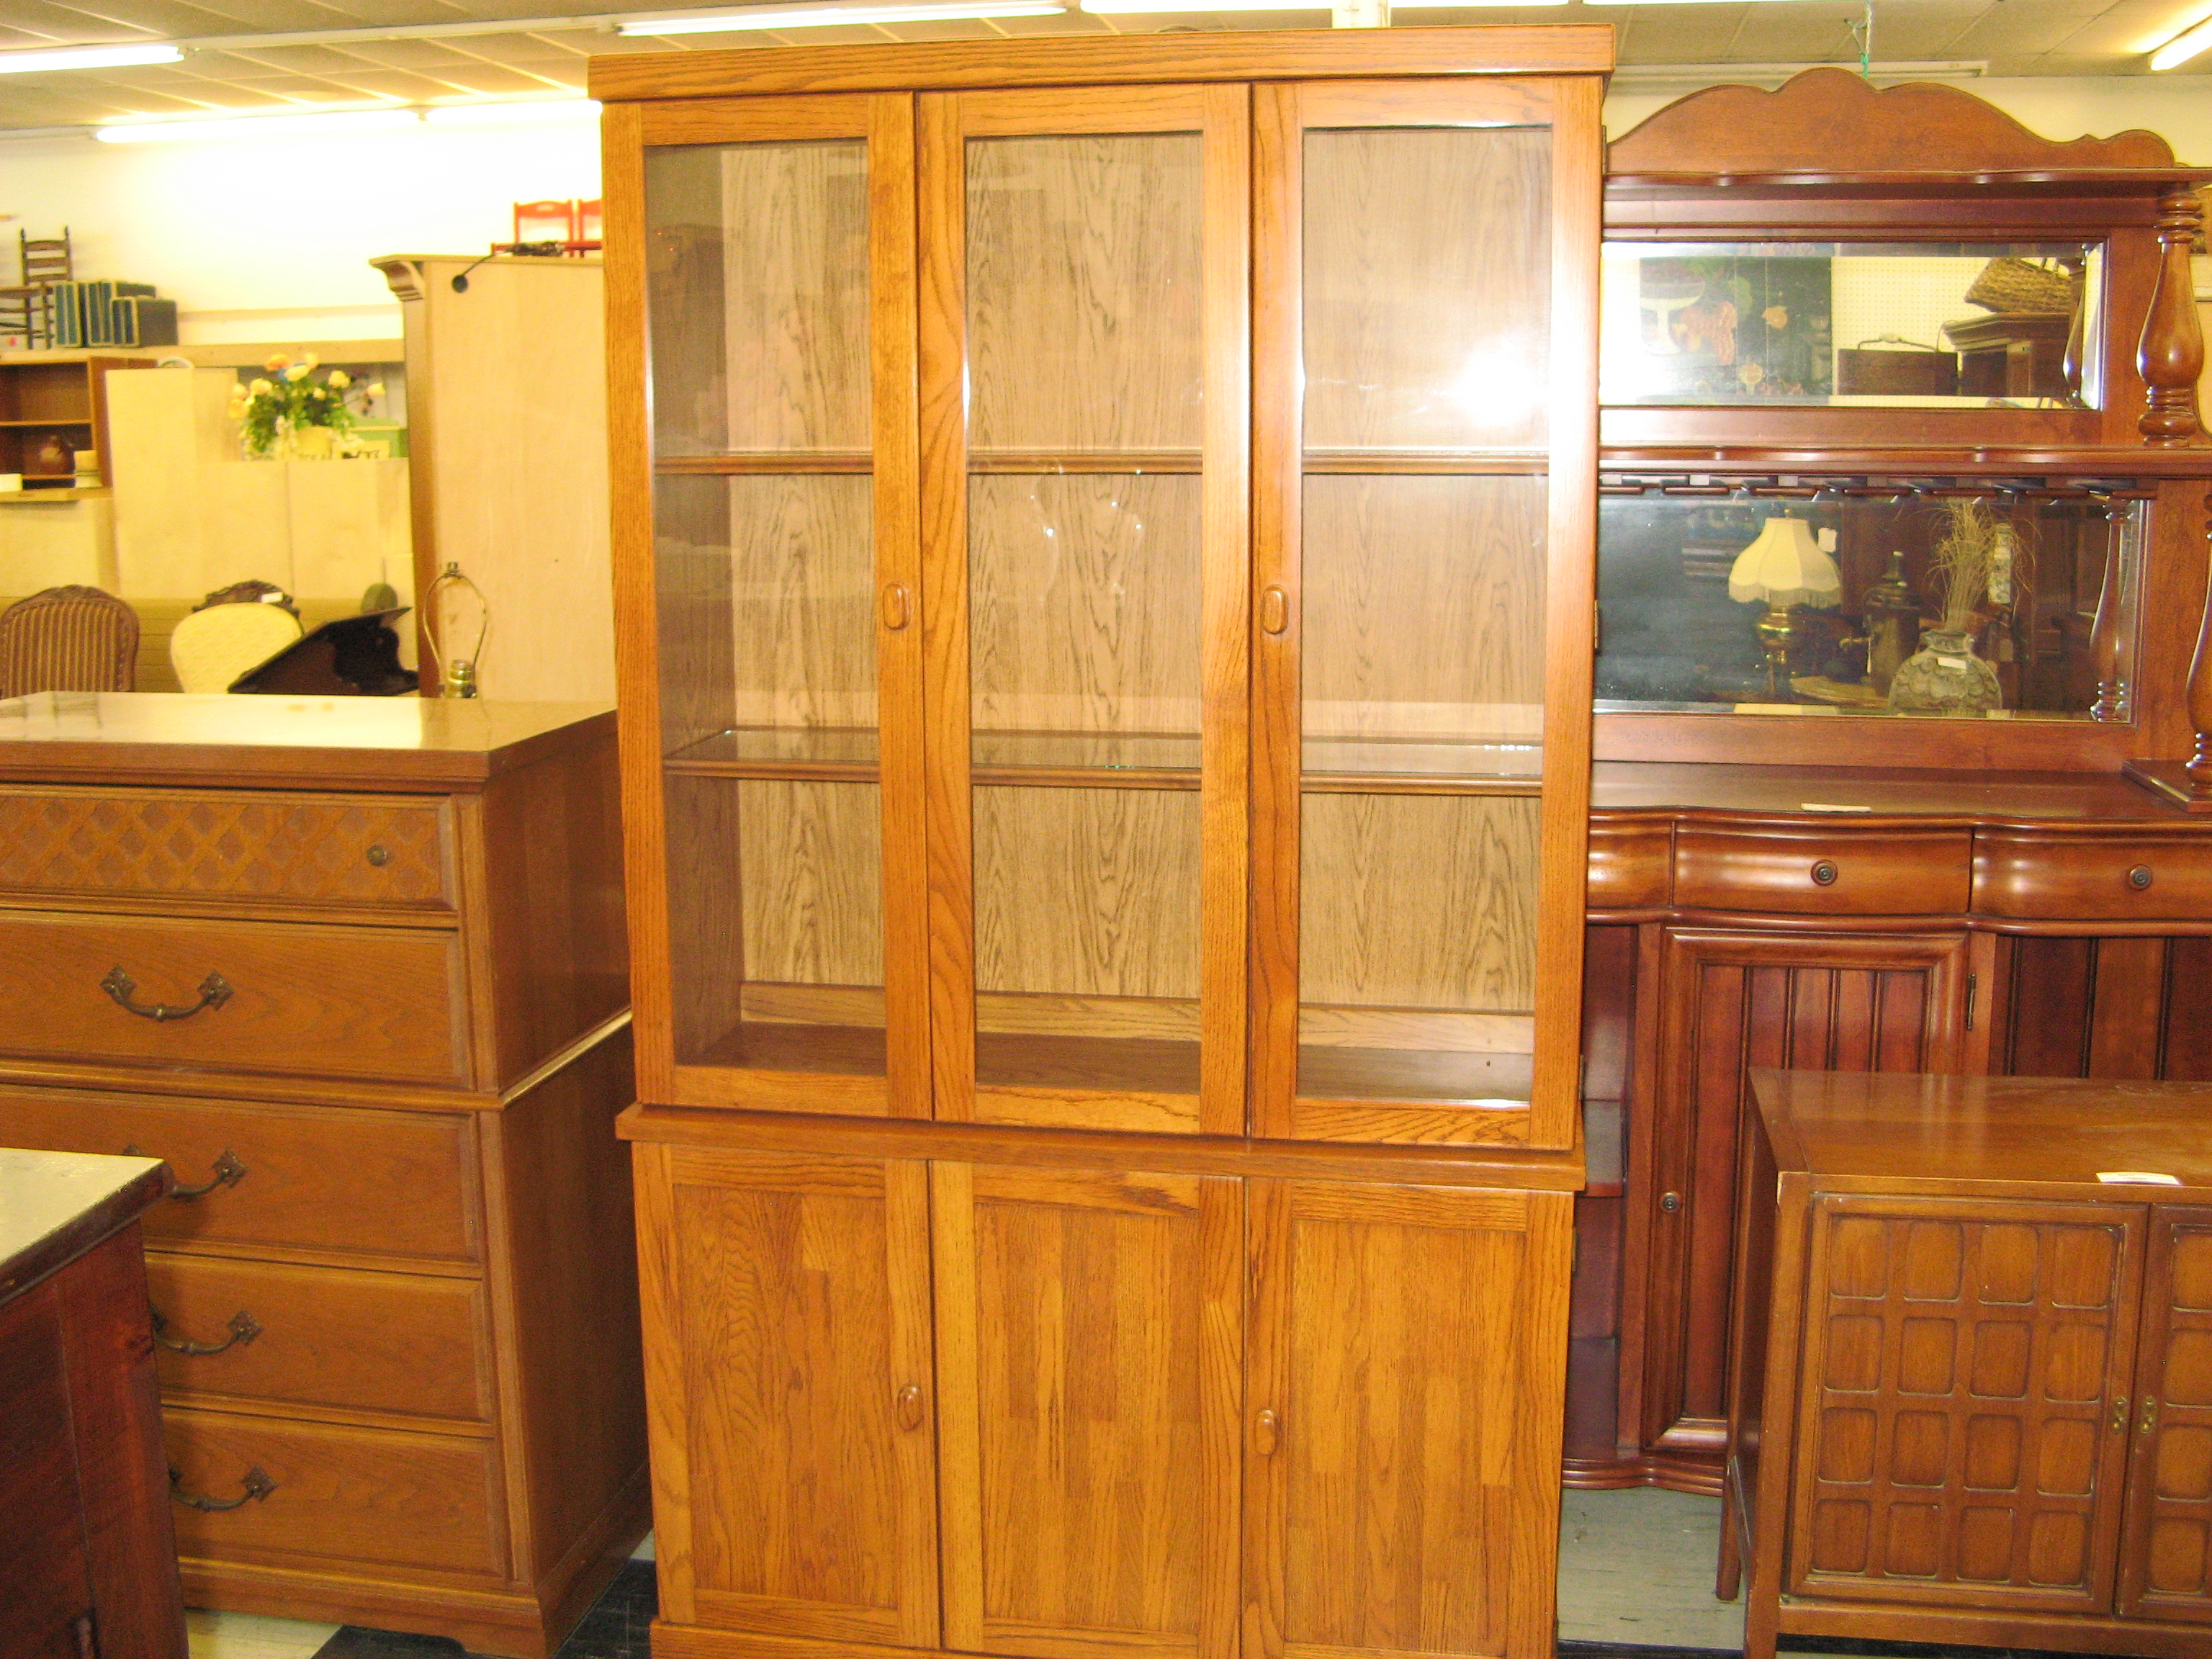 Broyhill Dining Room Hutch & Cabinet (2 Pieces)